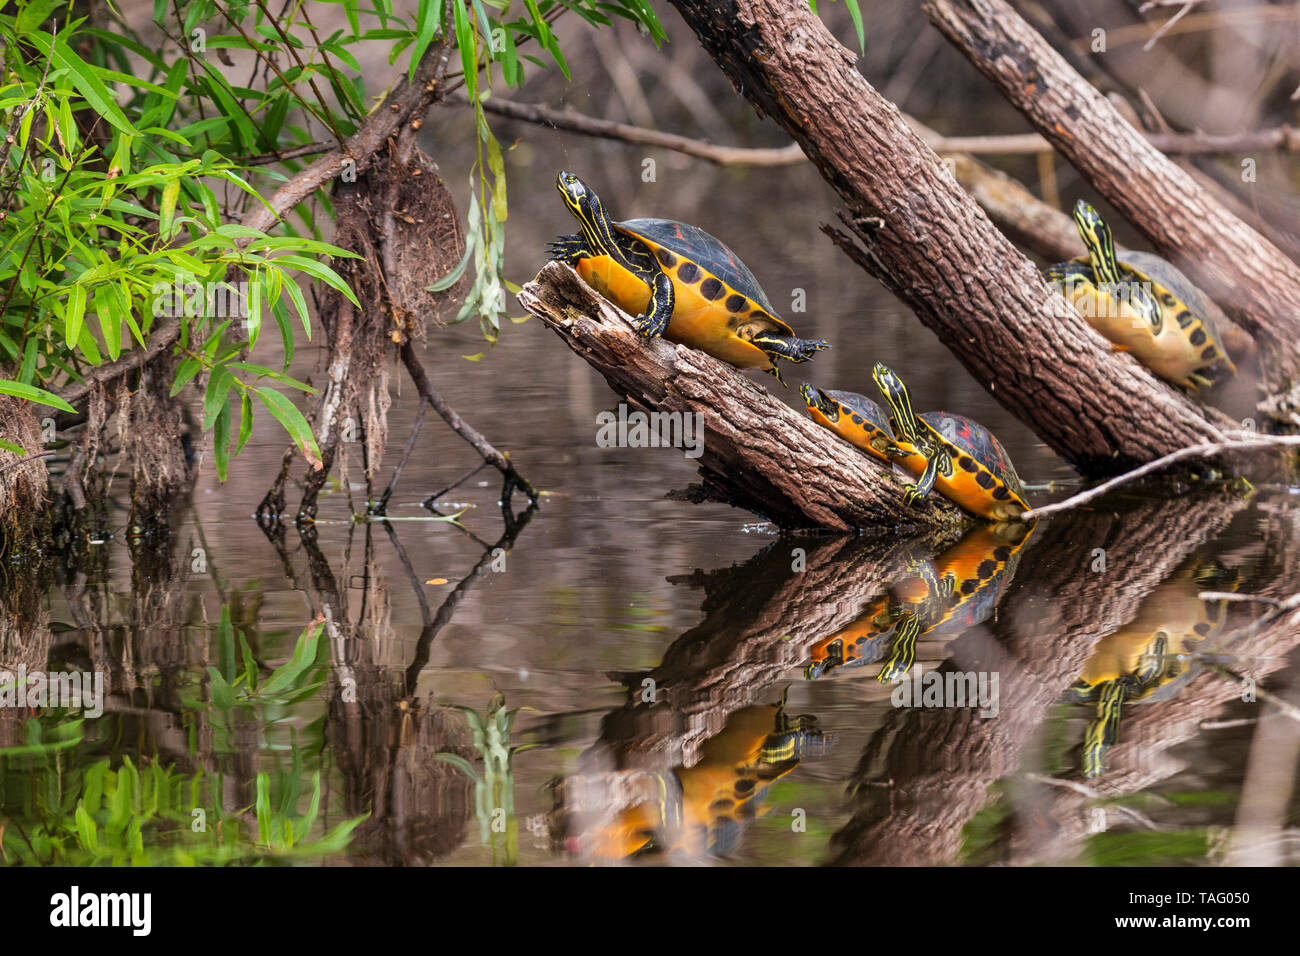 Florida Redbelly Turtle (Pseudemys nelsoni) in the Everglades Swamp, Florida, USA Stock Photo